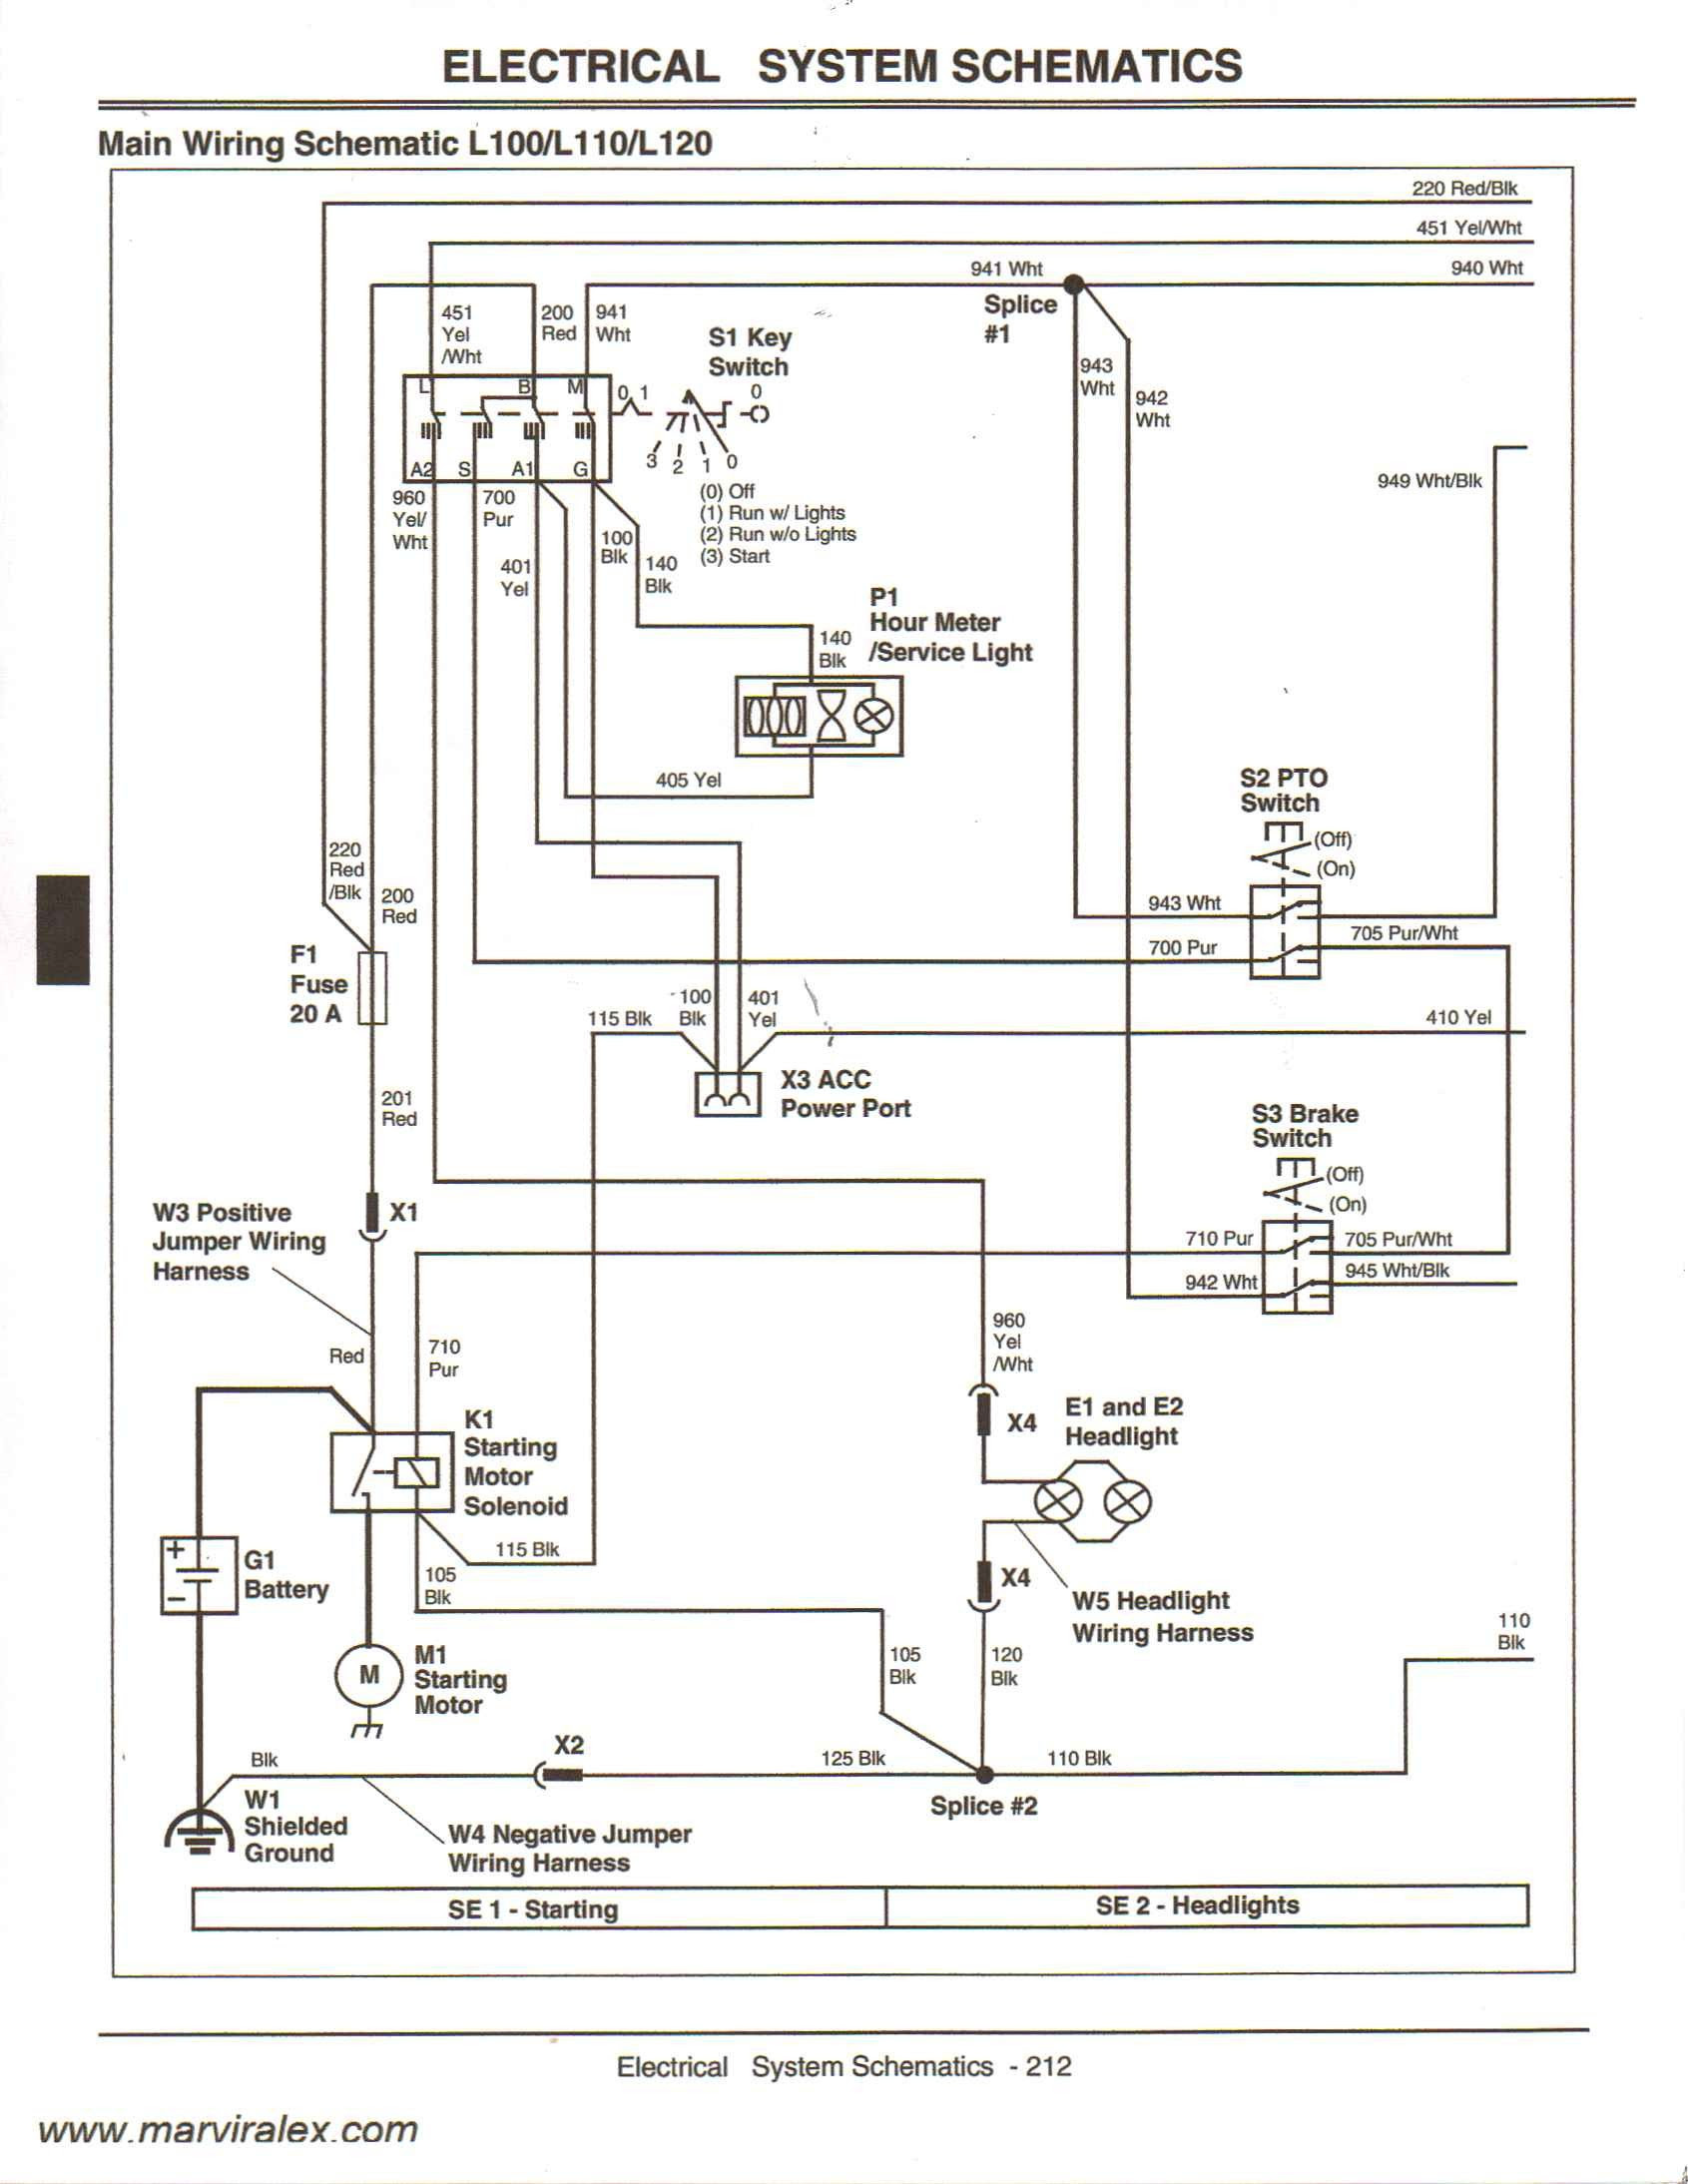 John Deere L130 Pto Switch Wiring Diagram